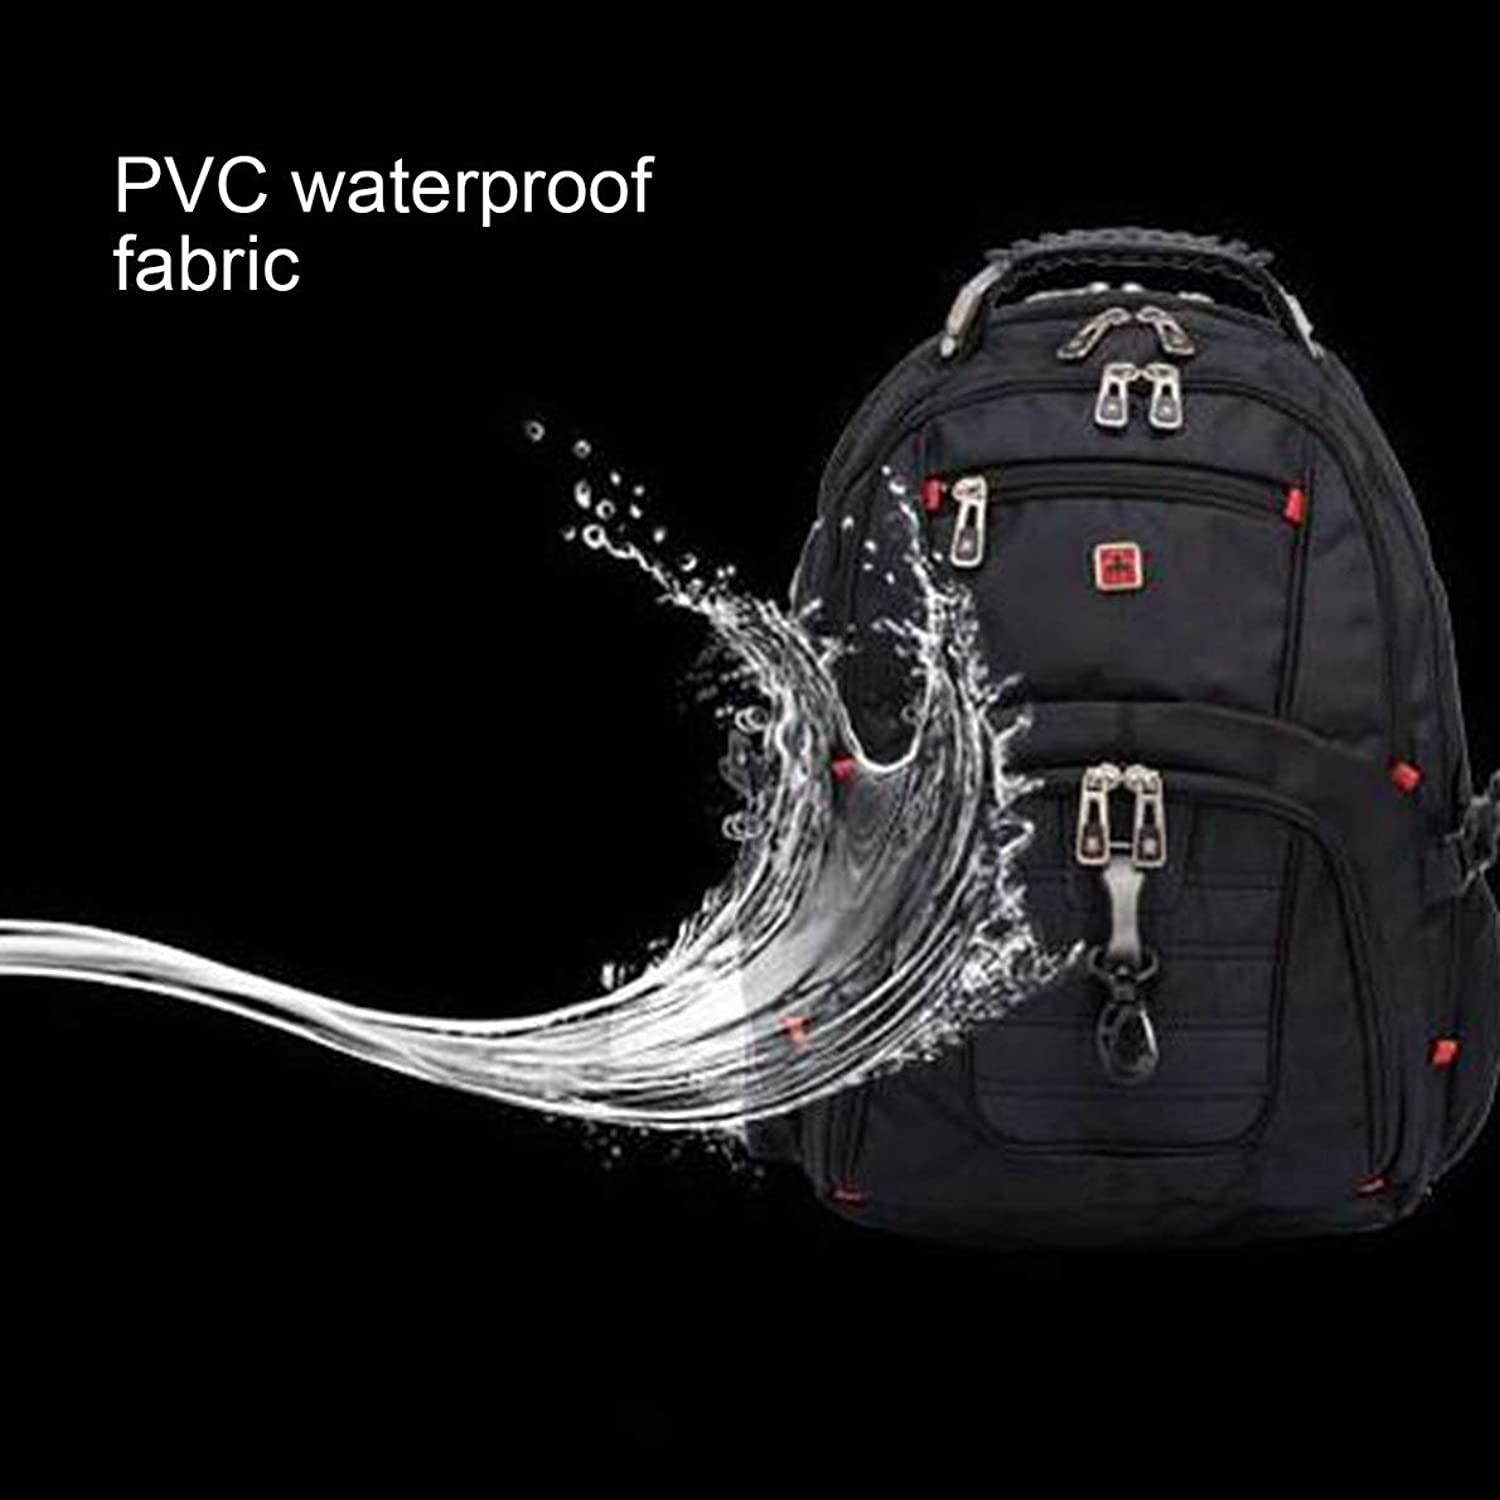 Laptop Backpack, 15.6inch Business AntiTheft Nylon Travel Bag Waterproof Large Compartment College School Computer Notebook Bag, for Unisex Hiking Climbing Bag